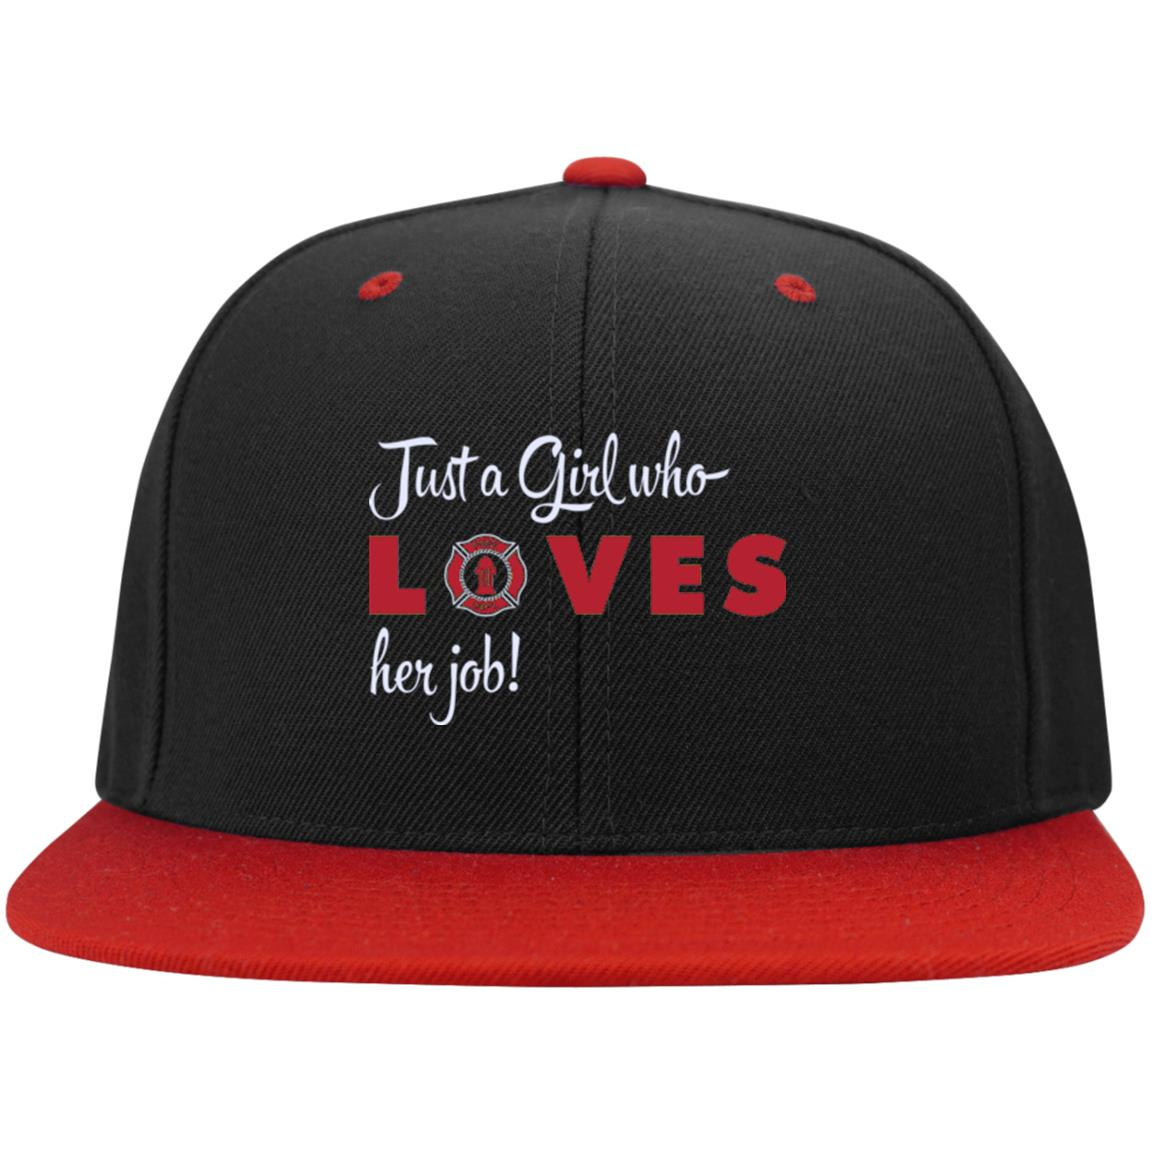 Just A Girl Who Loves Her Job Snapback Hat